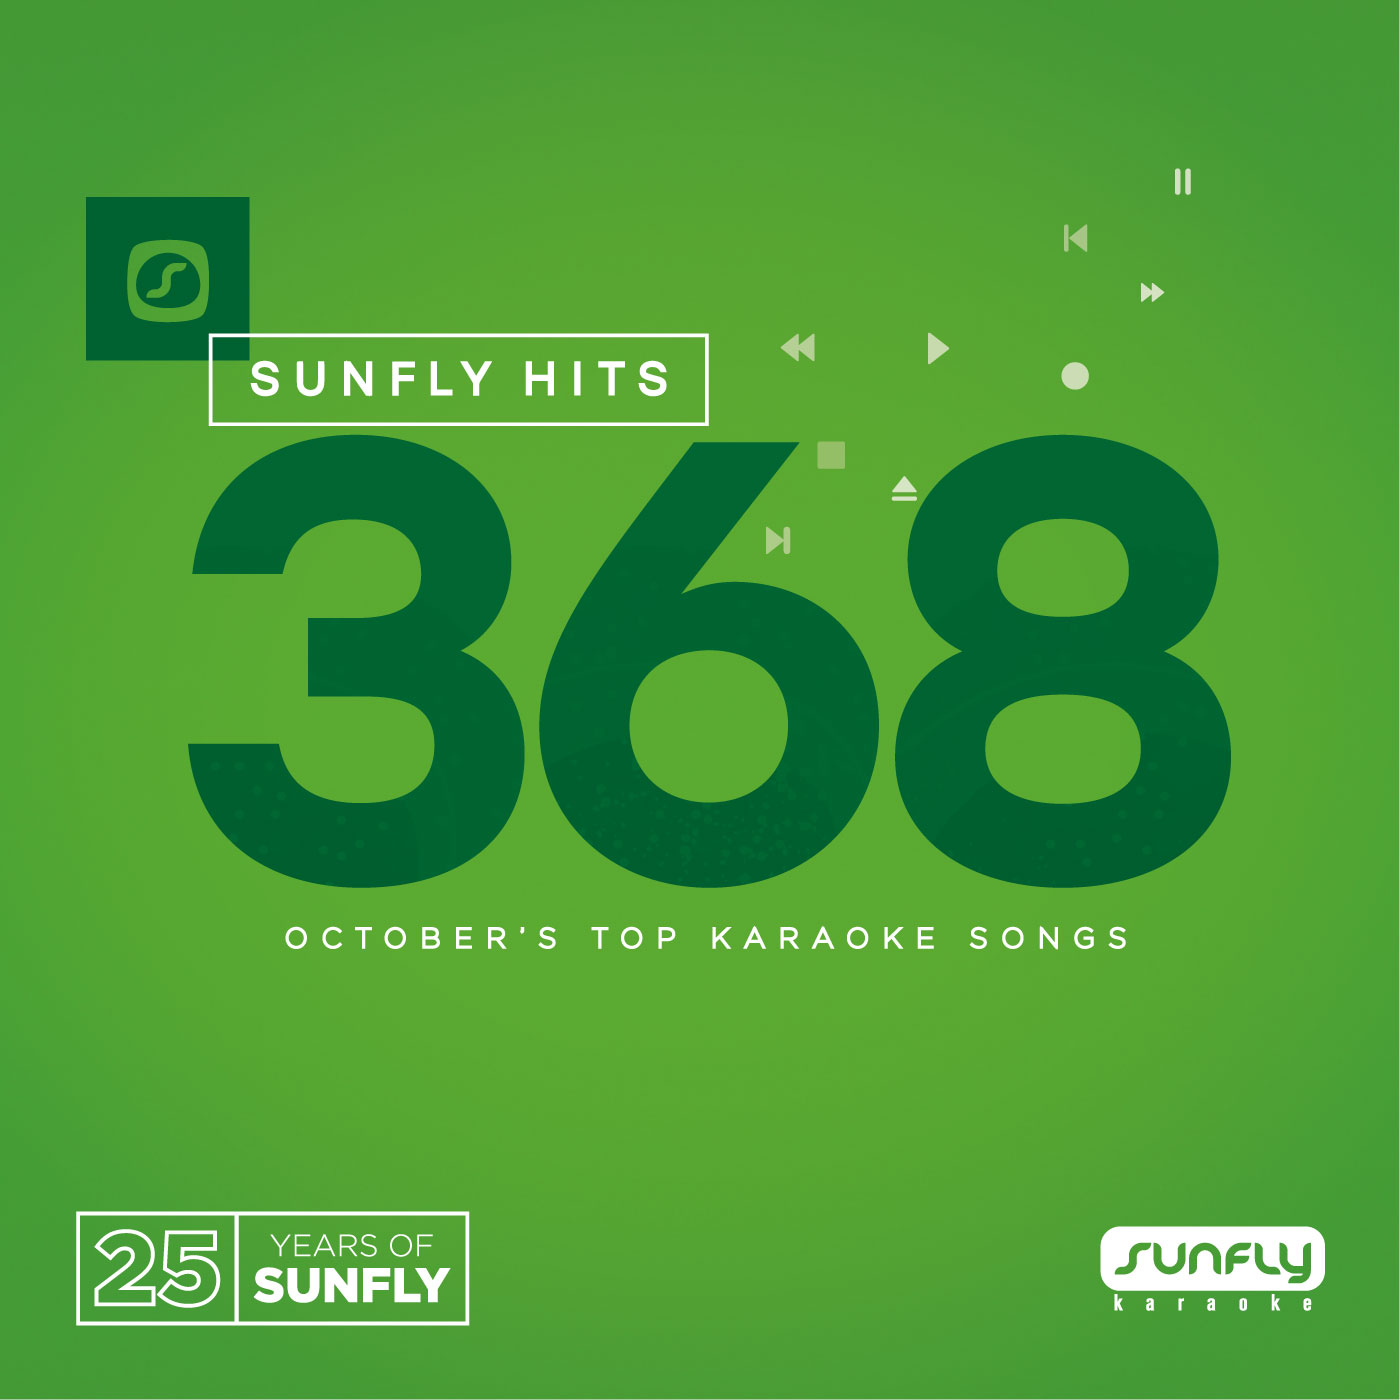 Sunfly Hits Vol.368 - October 2016